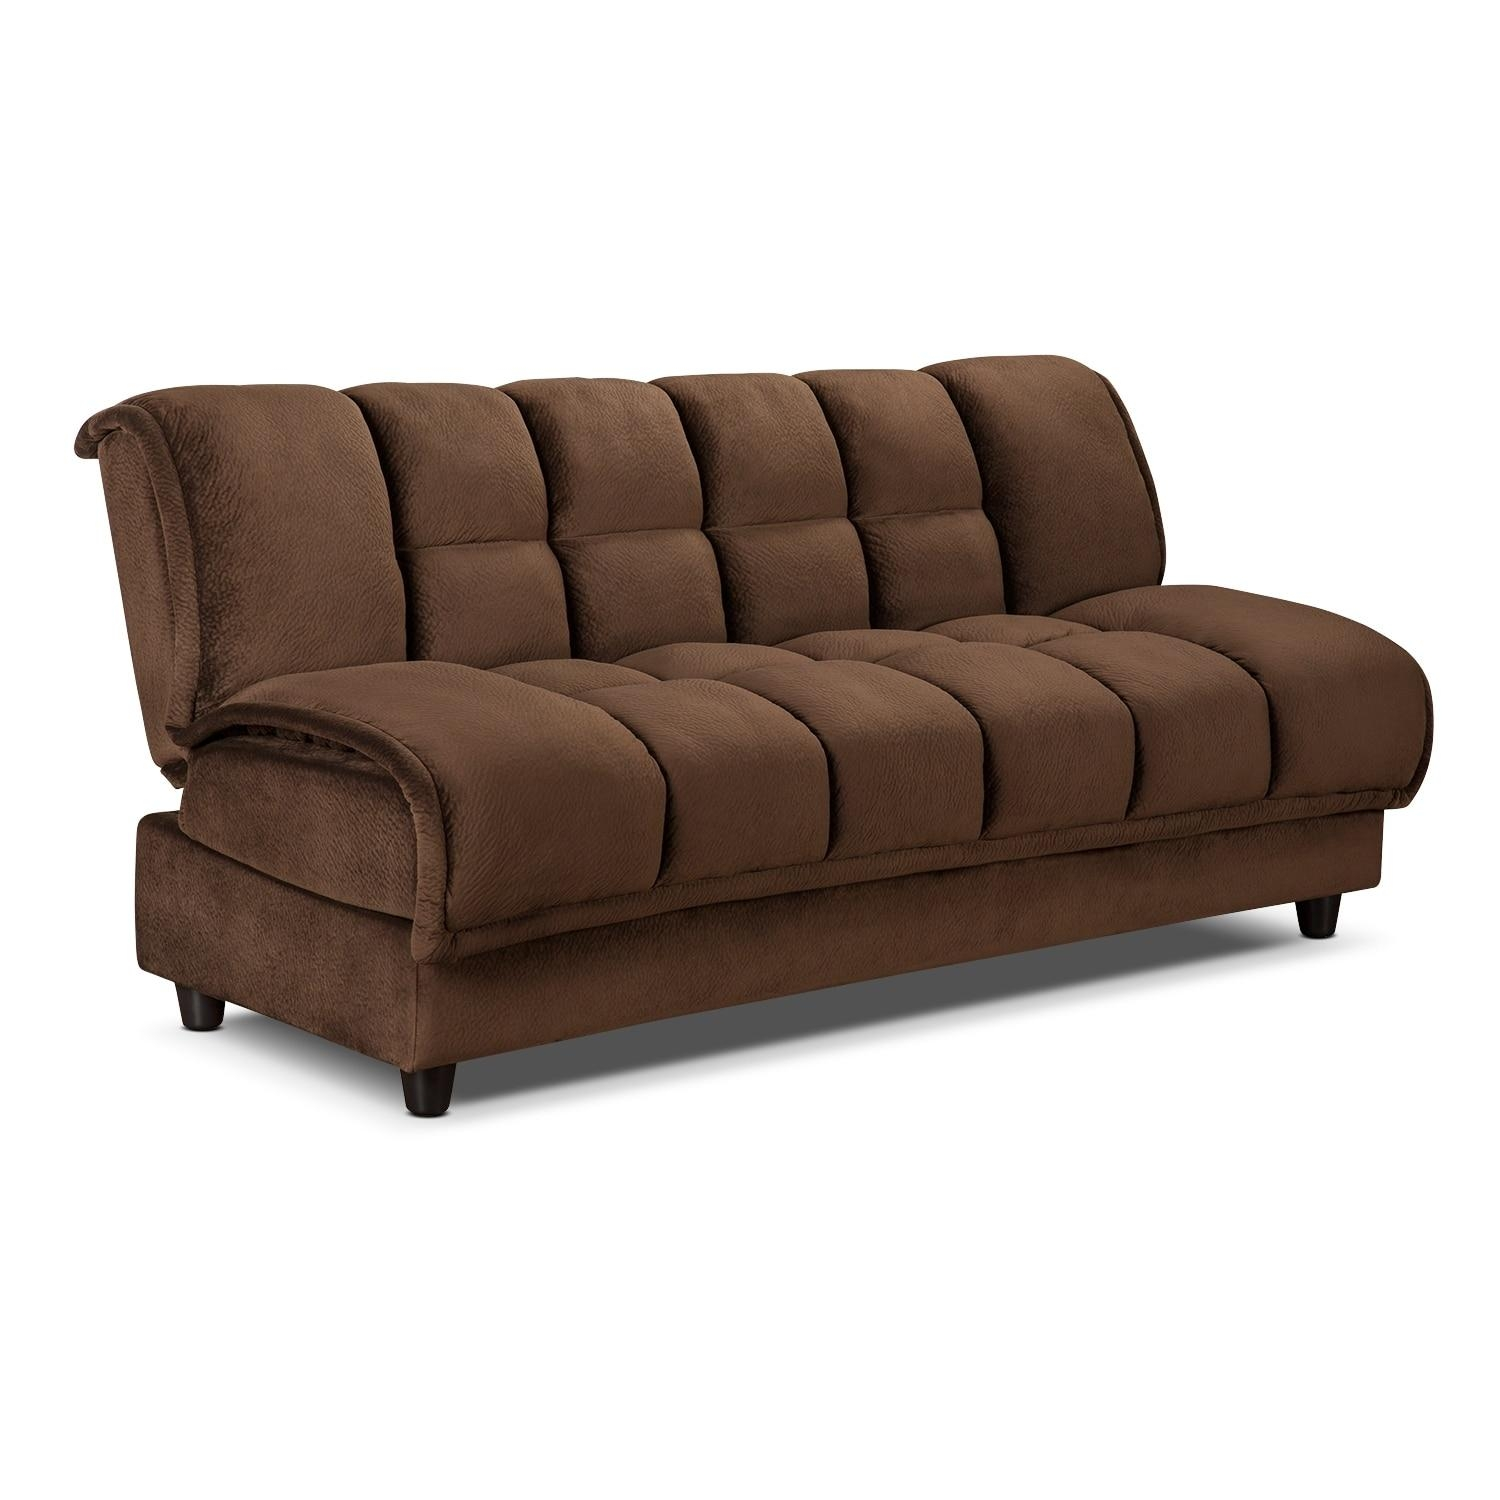 Sofas Center : Evelyn Designer Style Tufted Back Fabric Sofa For Denver Sleeper Sofas (View 4 of 20)